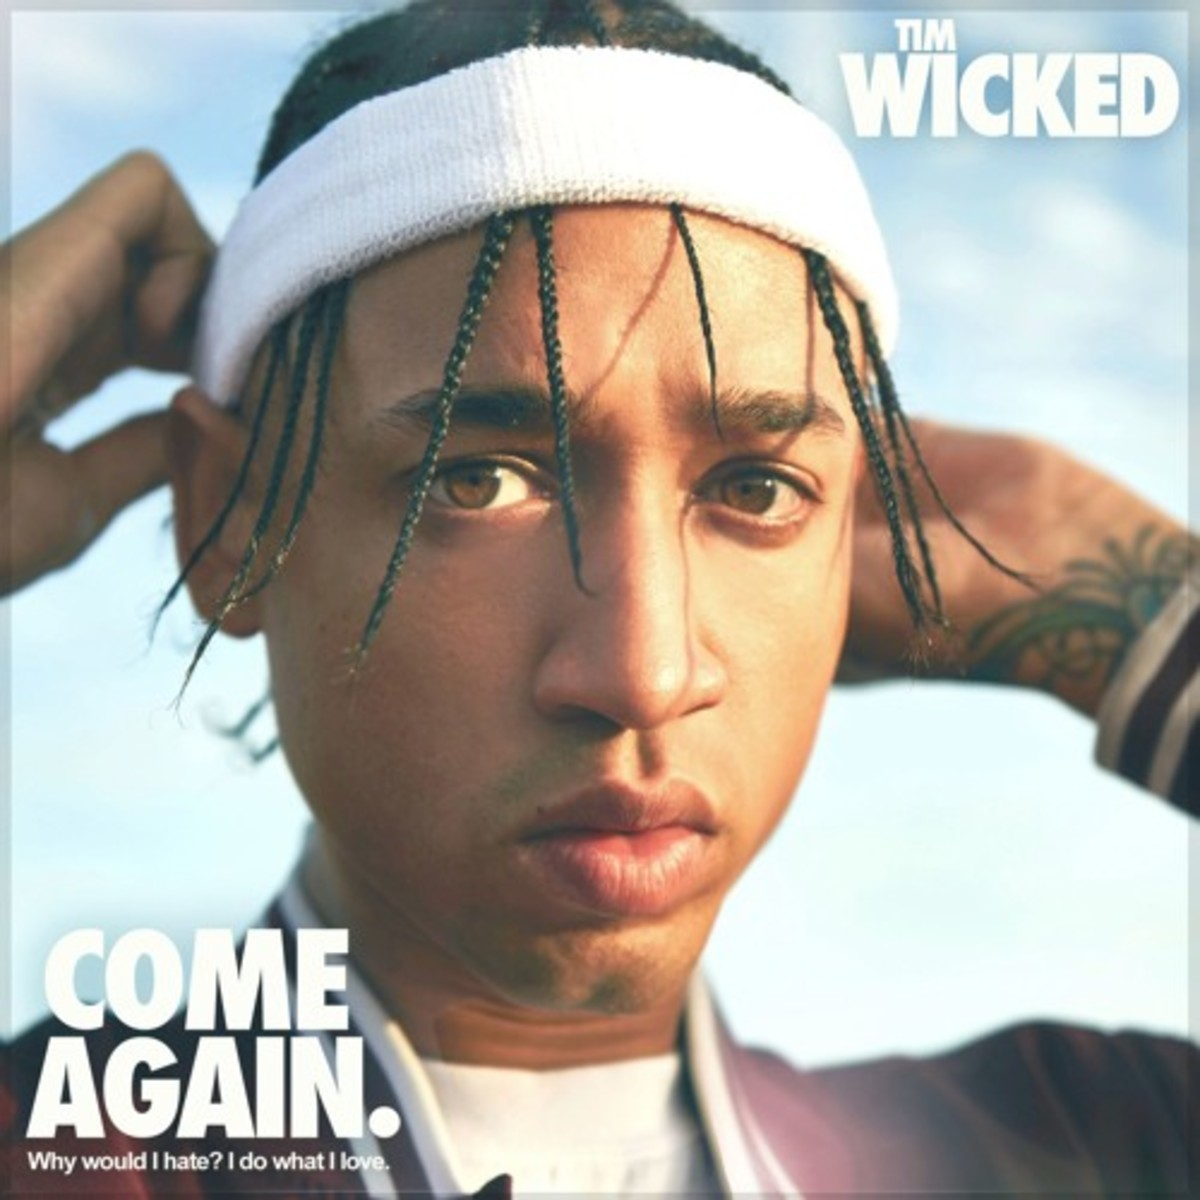 tim-wicked-come-again.jpg